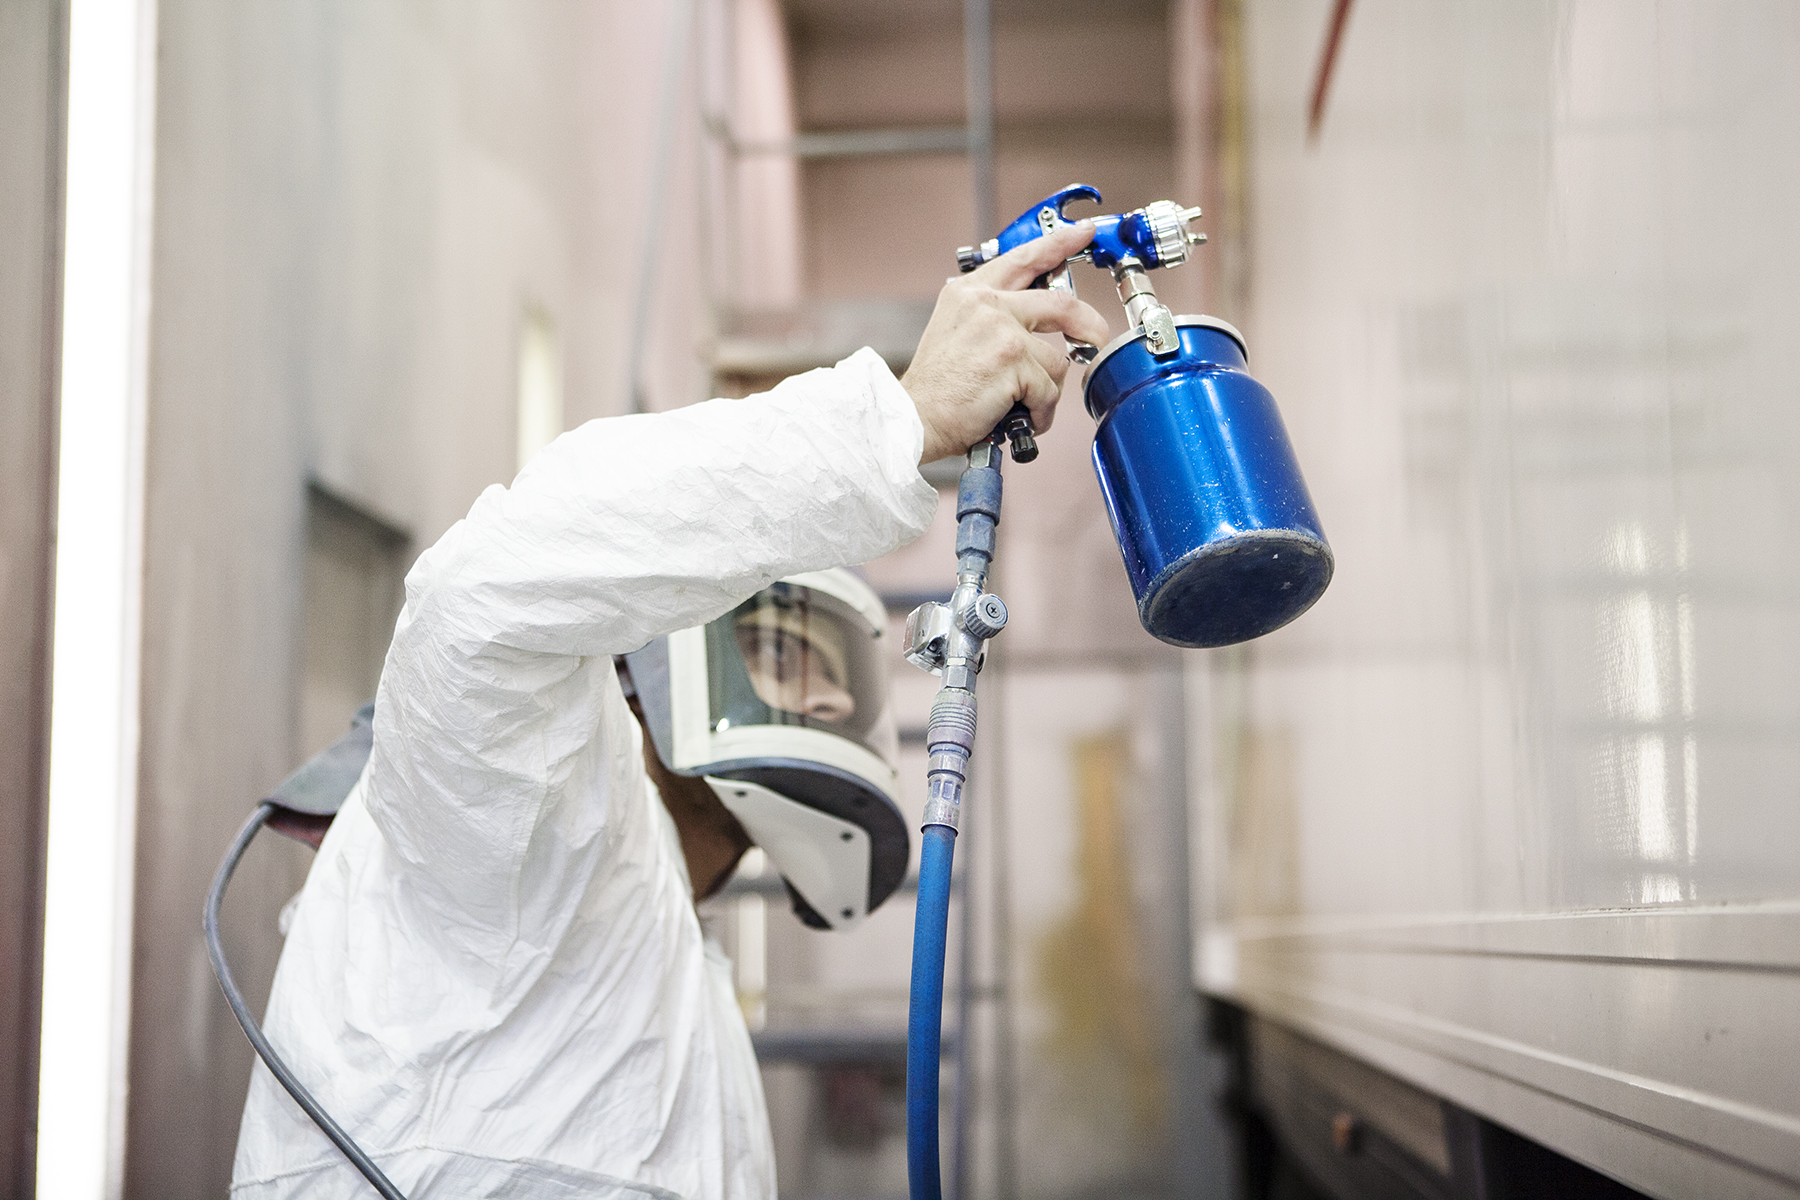 Editorial photography for business by Stephen Cole, commercial photographer based in Rochester. In this image, a man wearing a full-face mask and overalls sprays paint on to a lorry.